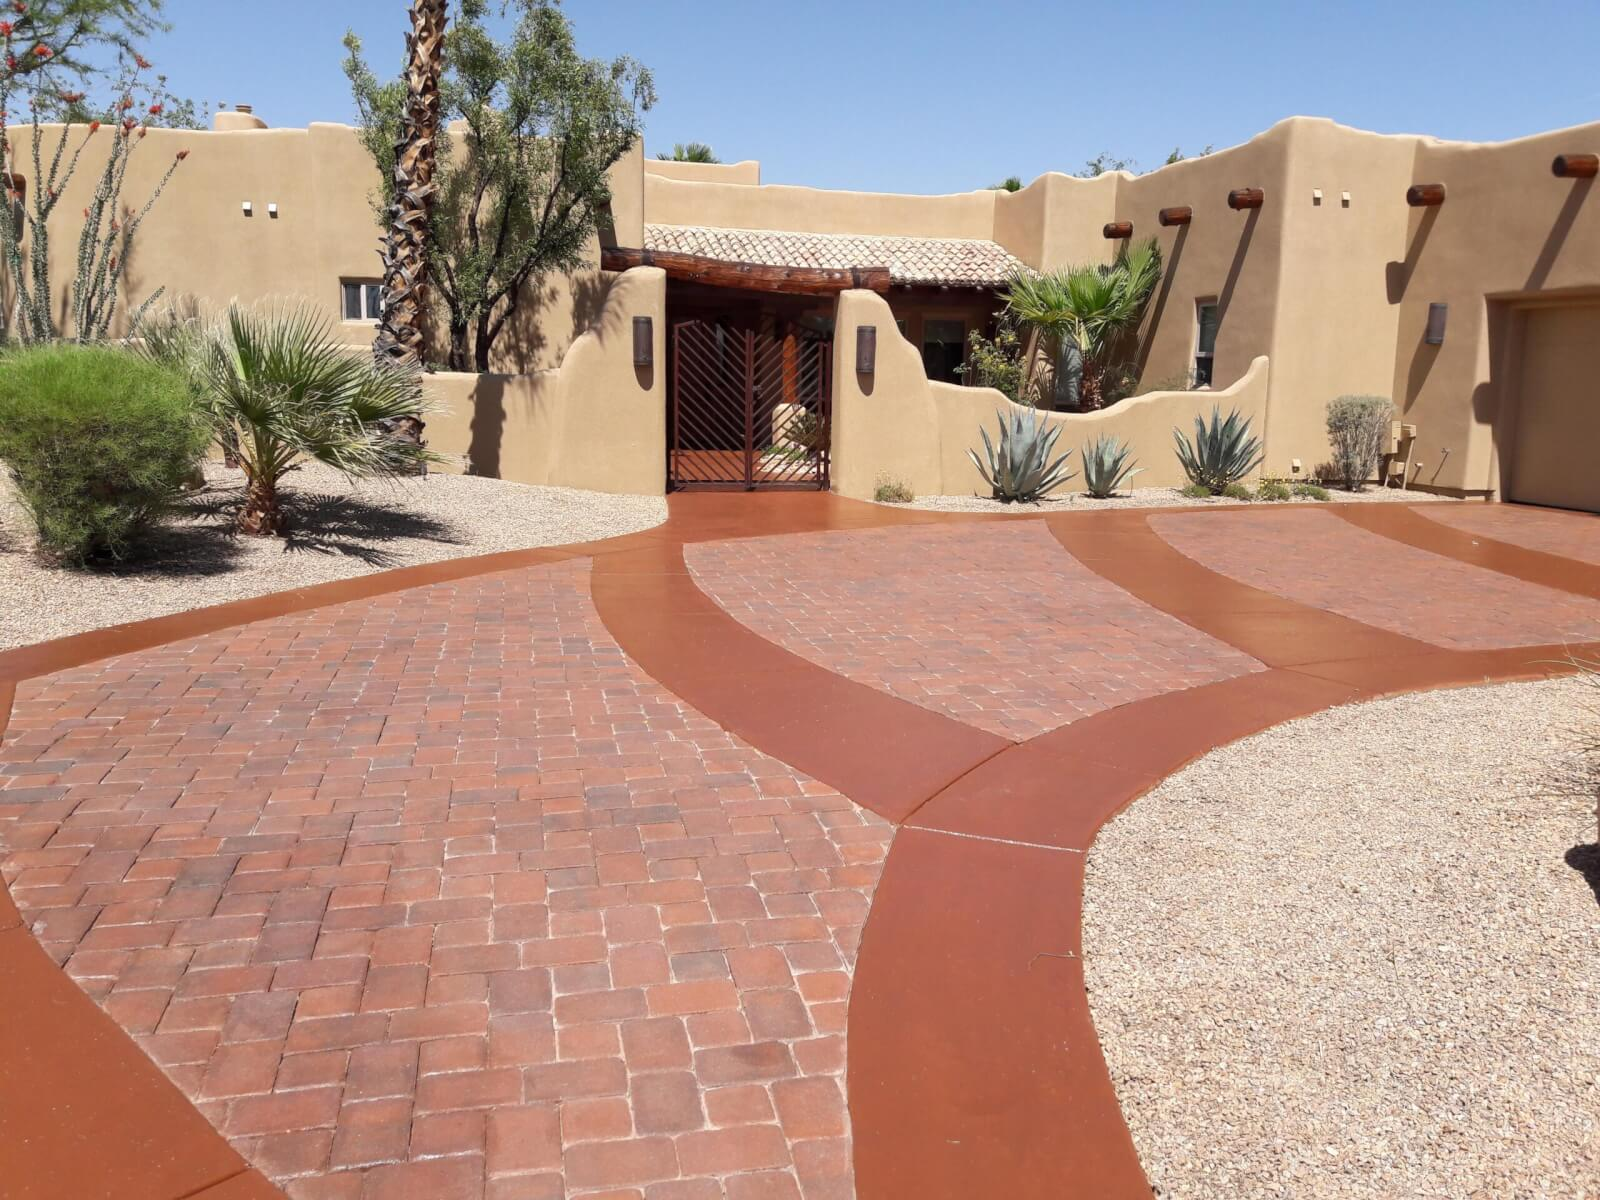 Driveway paver new coating after